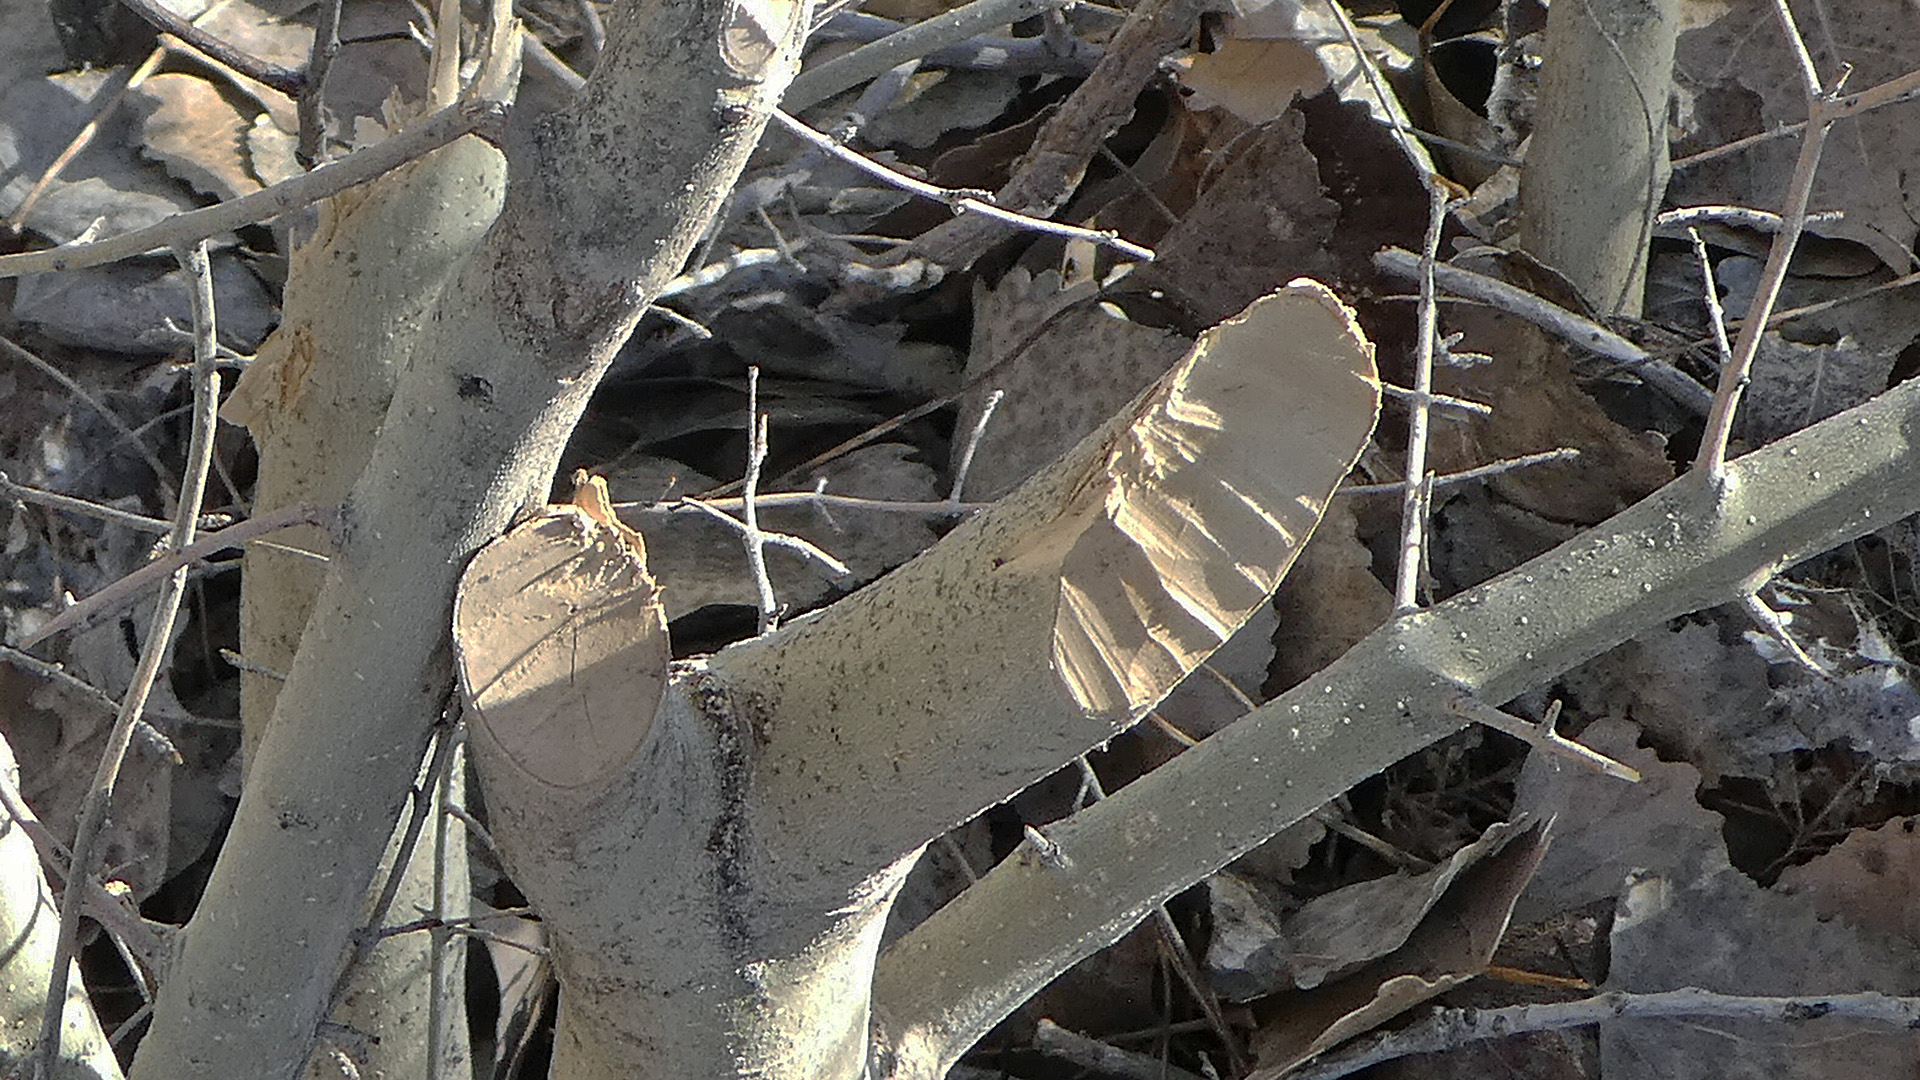 Sapling stump with tooth marks, Rio Grande Bosque, Corrales, January 2019